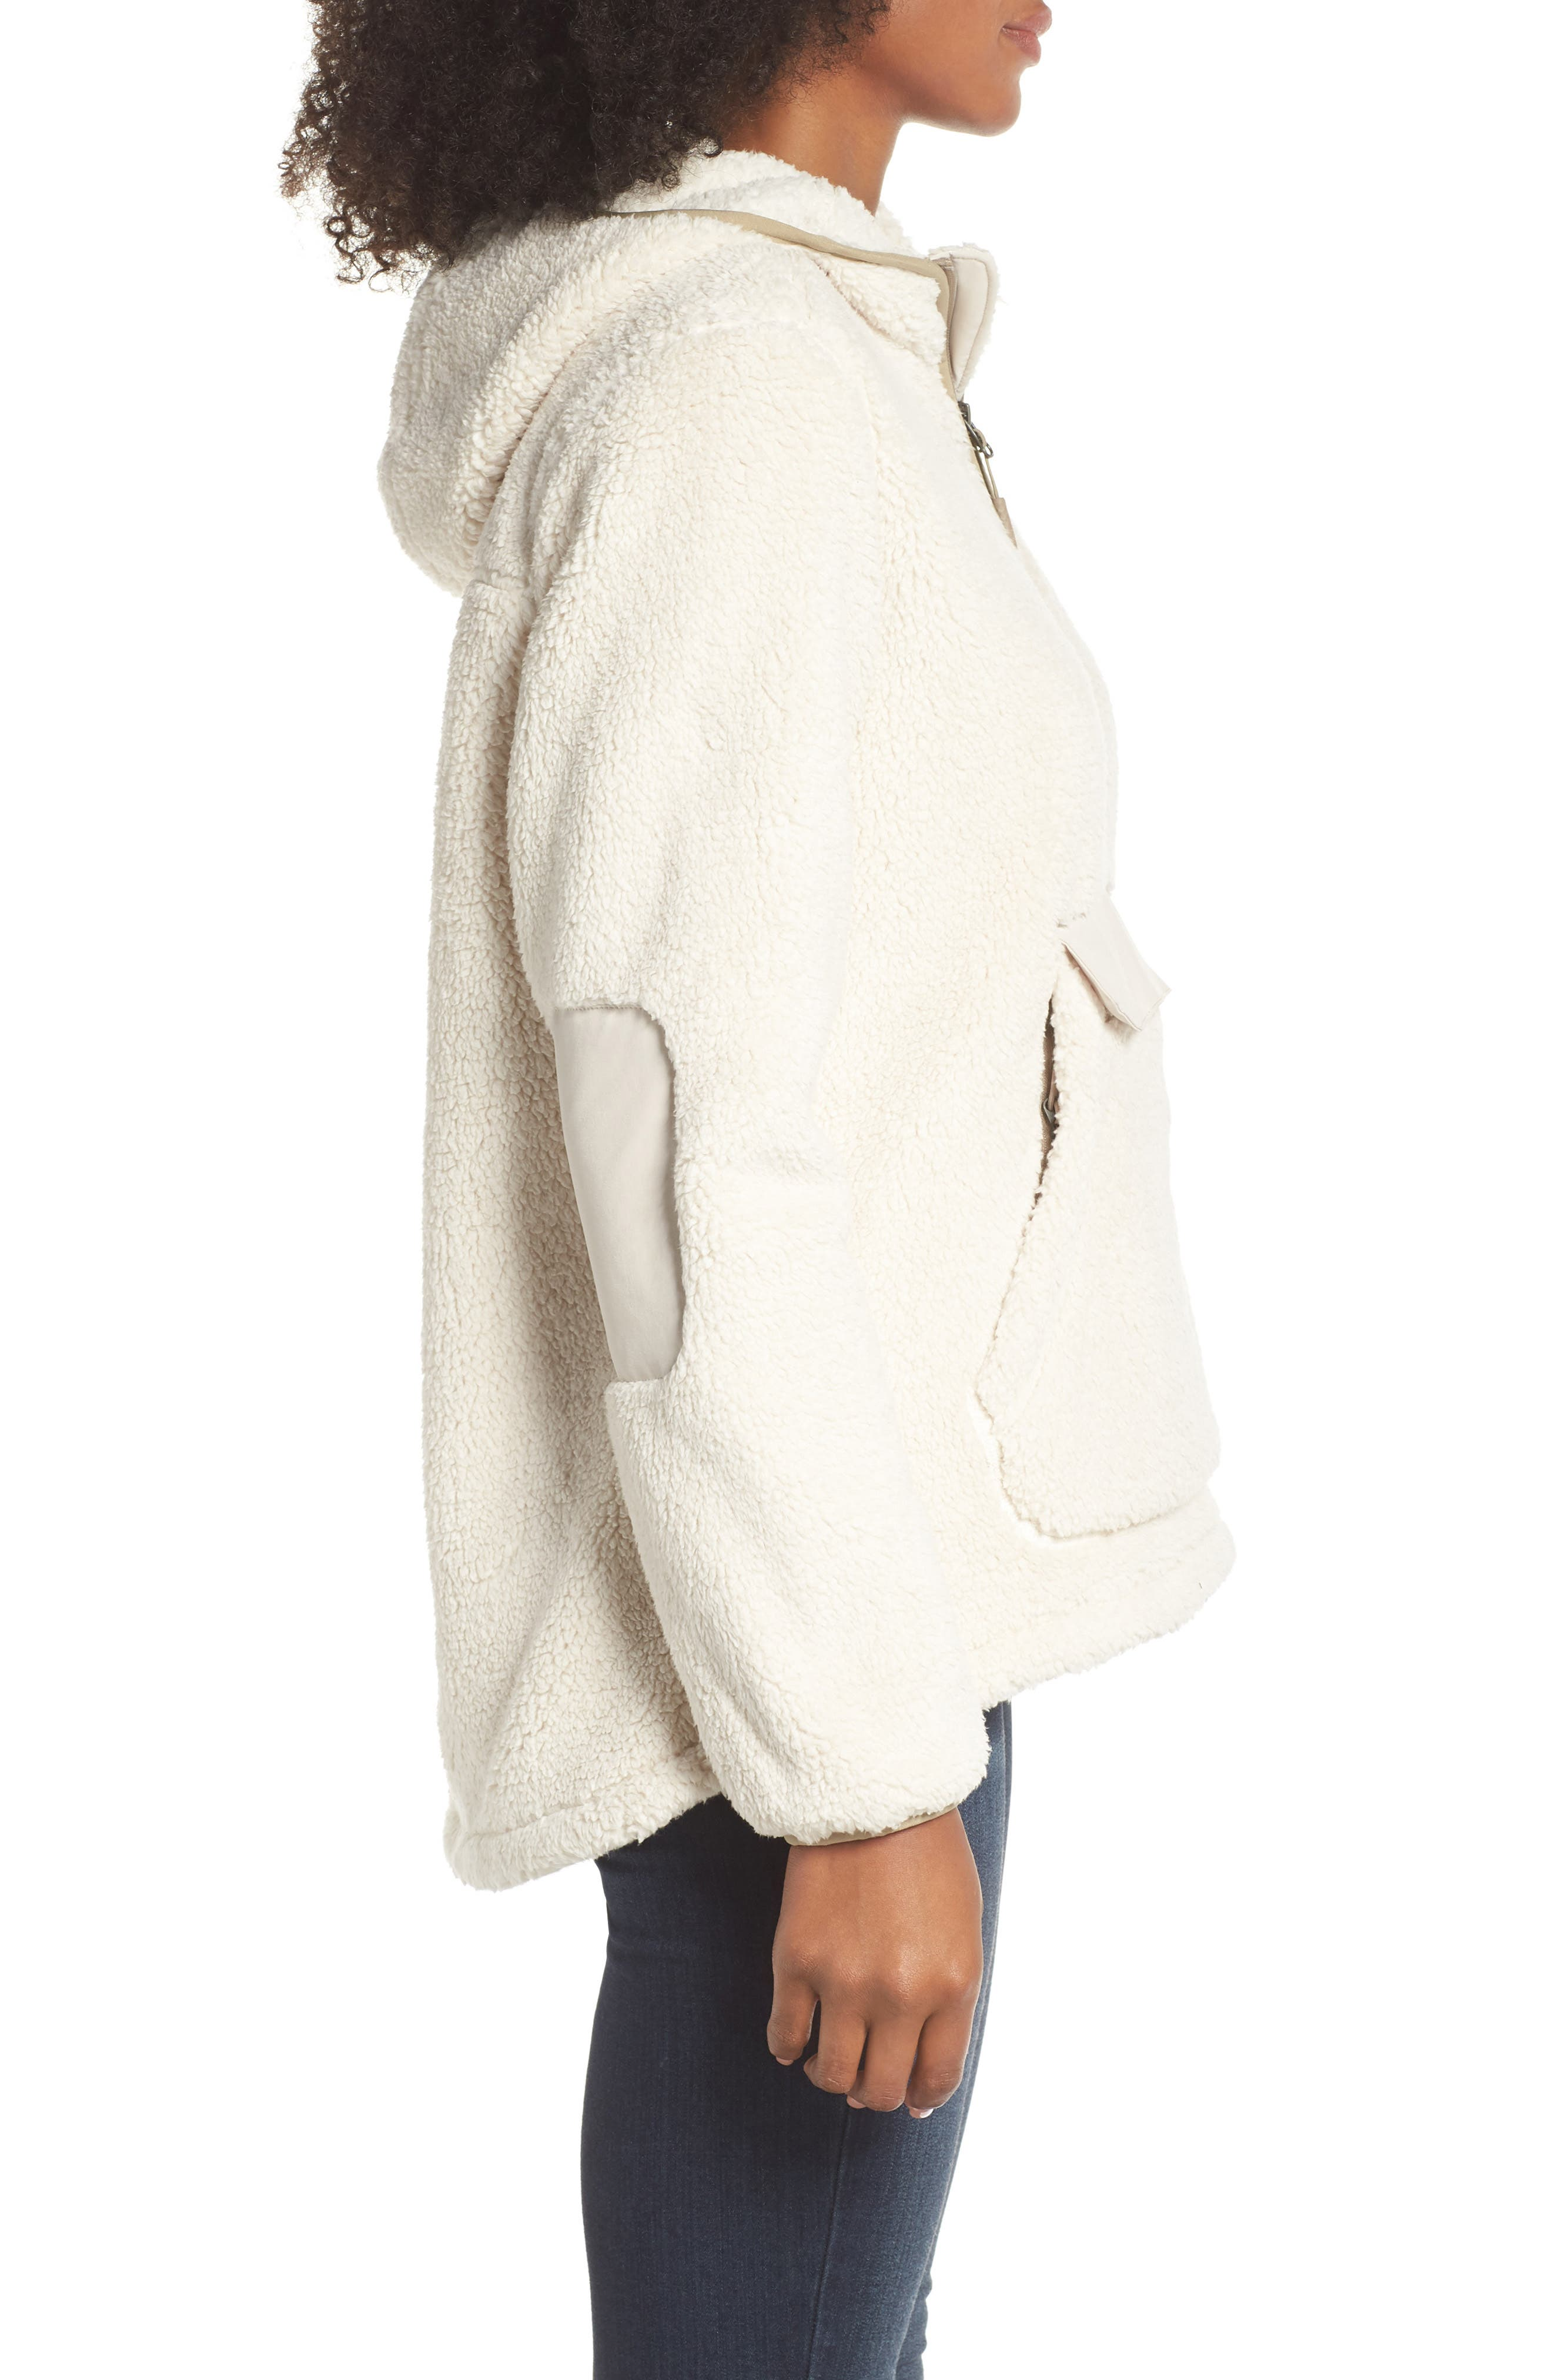 Campshire High Pile Fleece Pullover Hoodie,                             Alternate thumbnail 6, color,                             Vintage White/ Peyote Beige